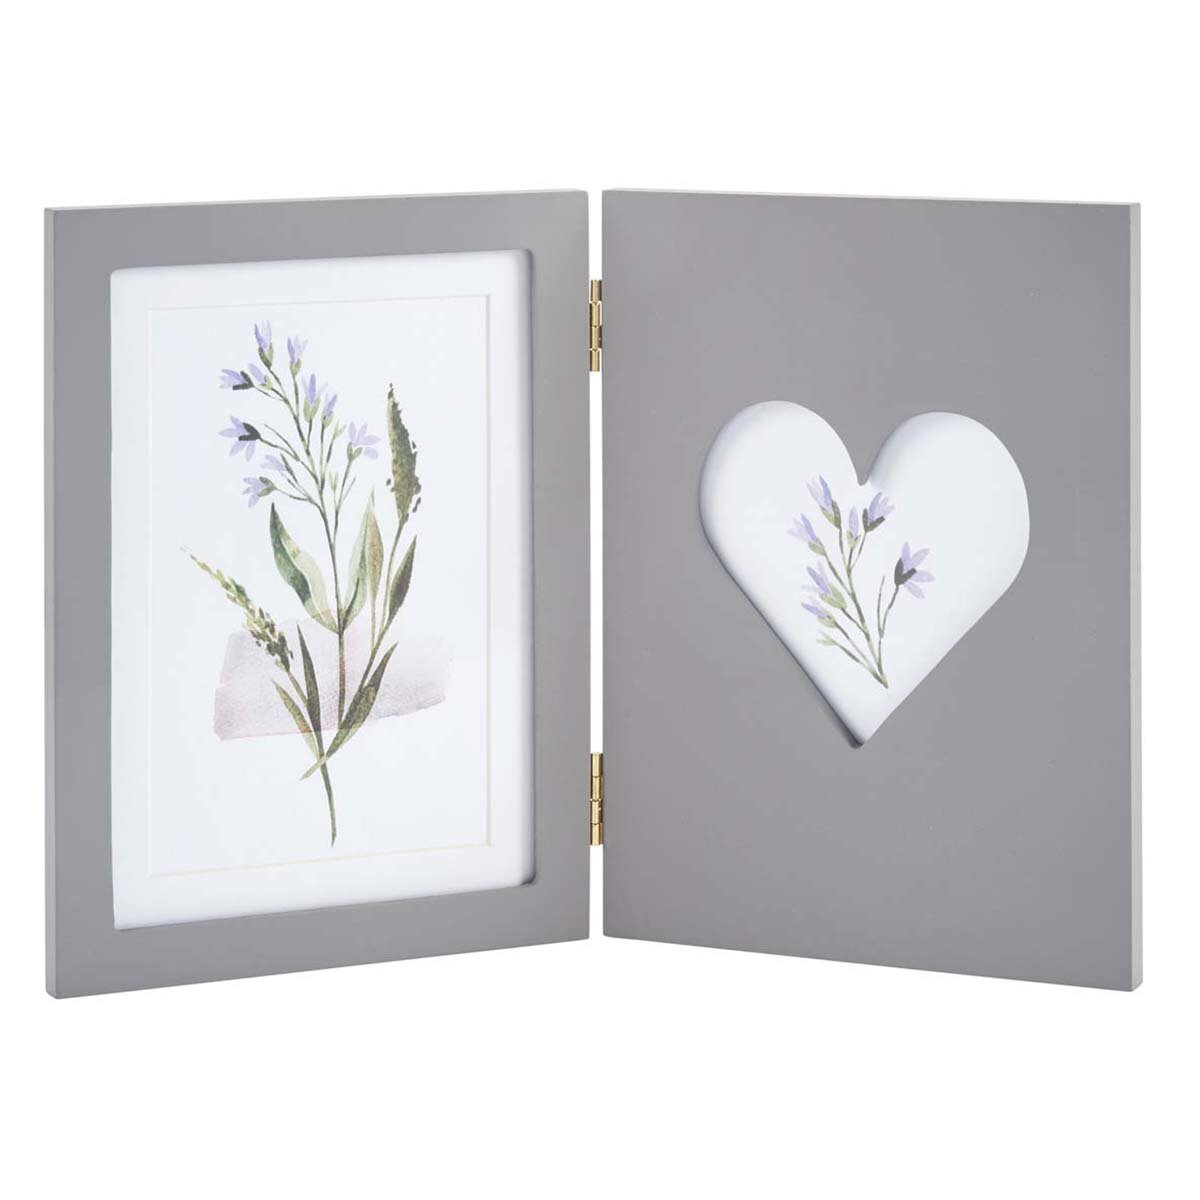 TWIN 6X4 FOLDING PHOTO FRAME - GREY